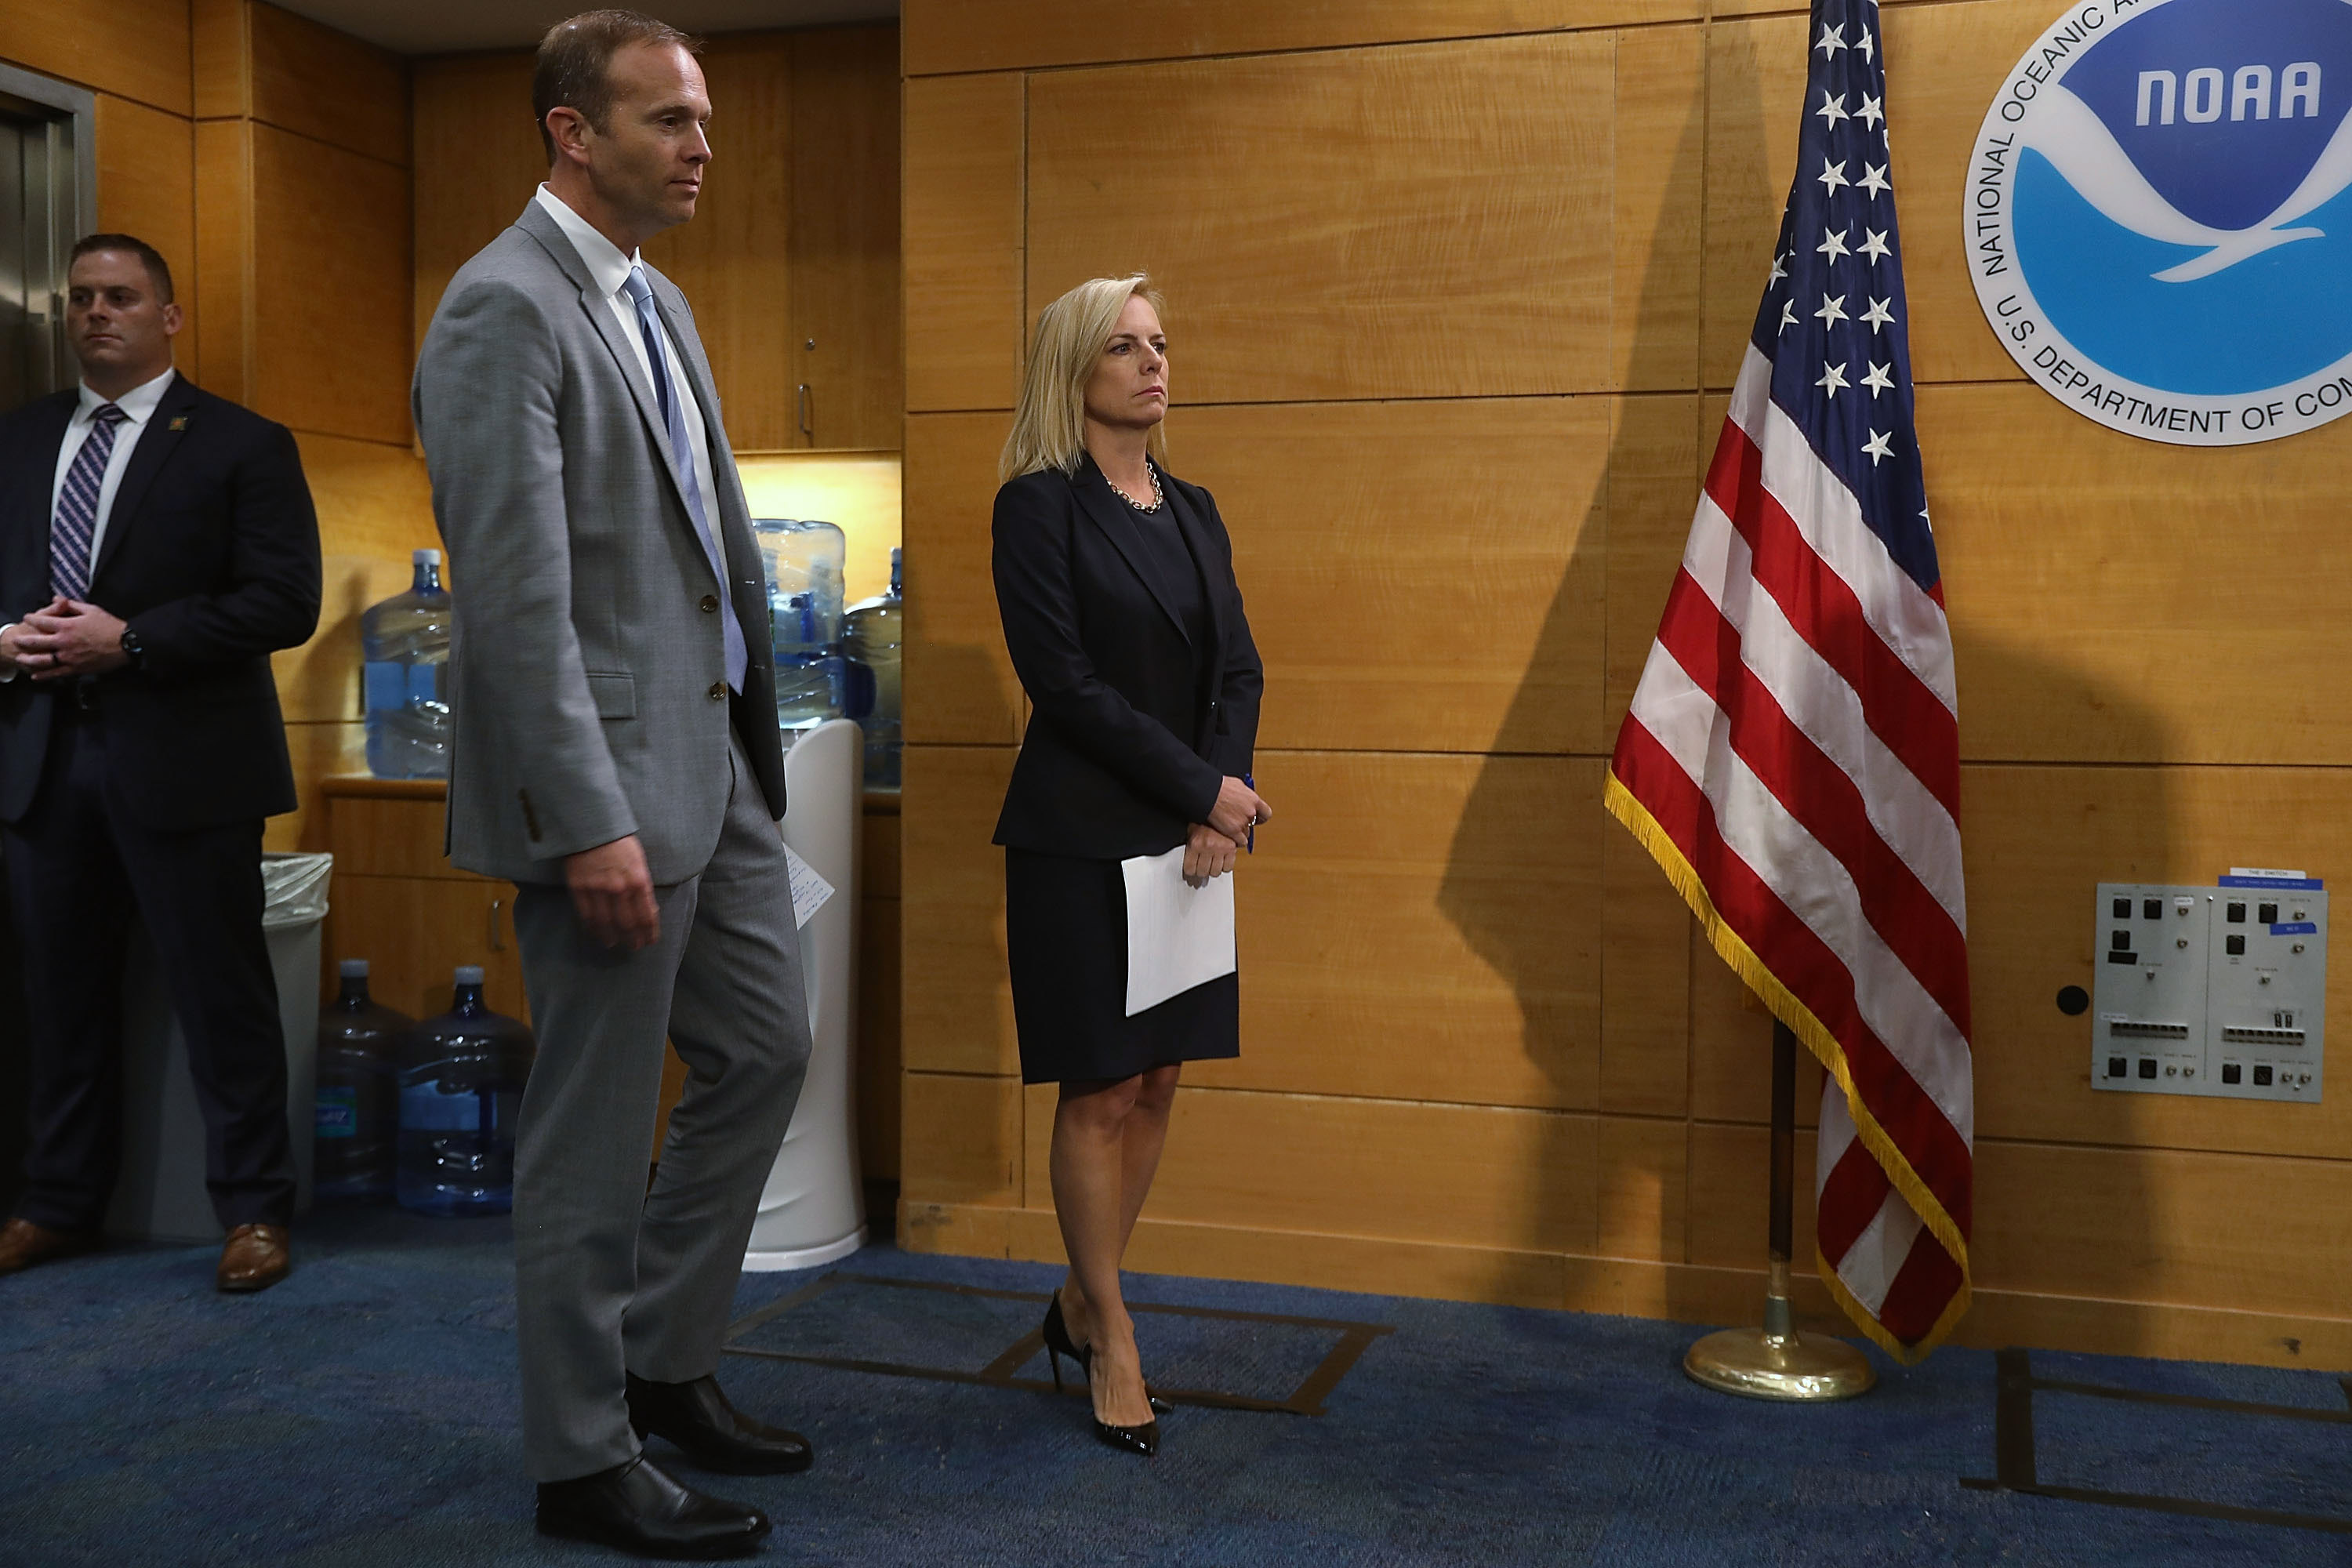 MIAMI, FL - MAY 30:  Kirstjen Nielsen (R), the U.S. Homeland Security Secretary, and Brock Long, FEMA's director, visit the National Hurricane Center on May 30, 2018 in Miami, Florida. The two visited the center as they urged people to prepare for the upcoming hurricane season that officially begins on June 1, 2018 and ends on November 30th.  (Photo by Joe Raedle/Getty Images)